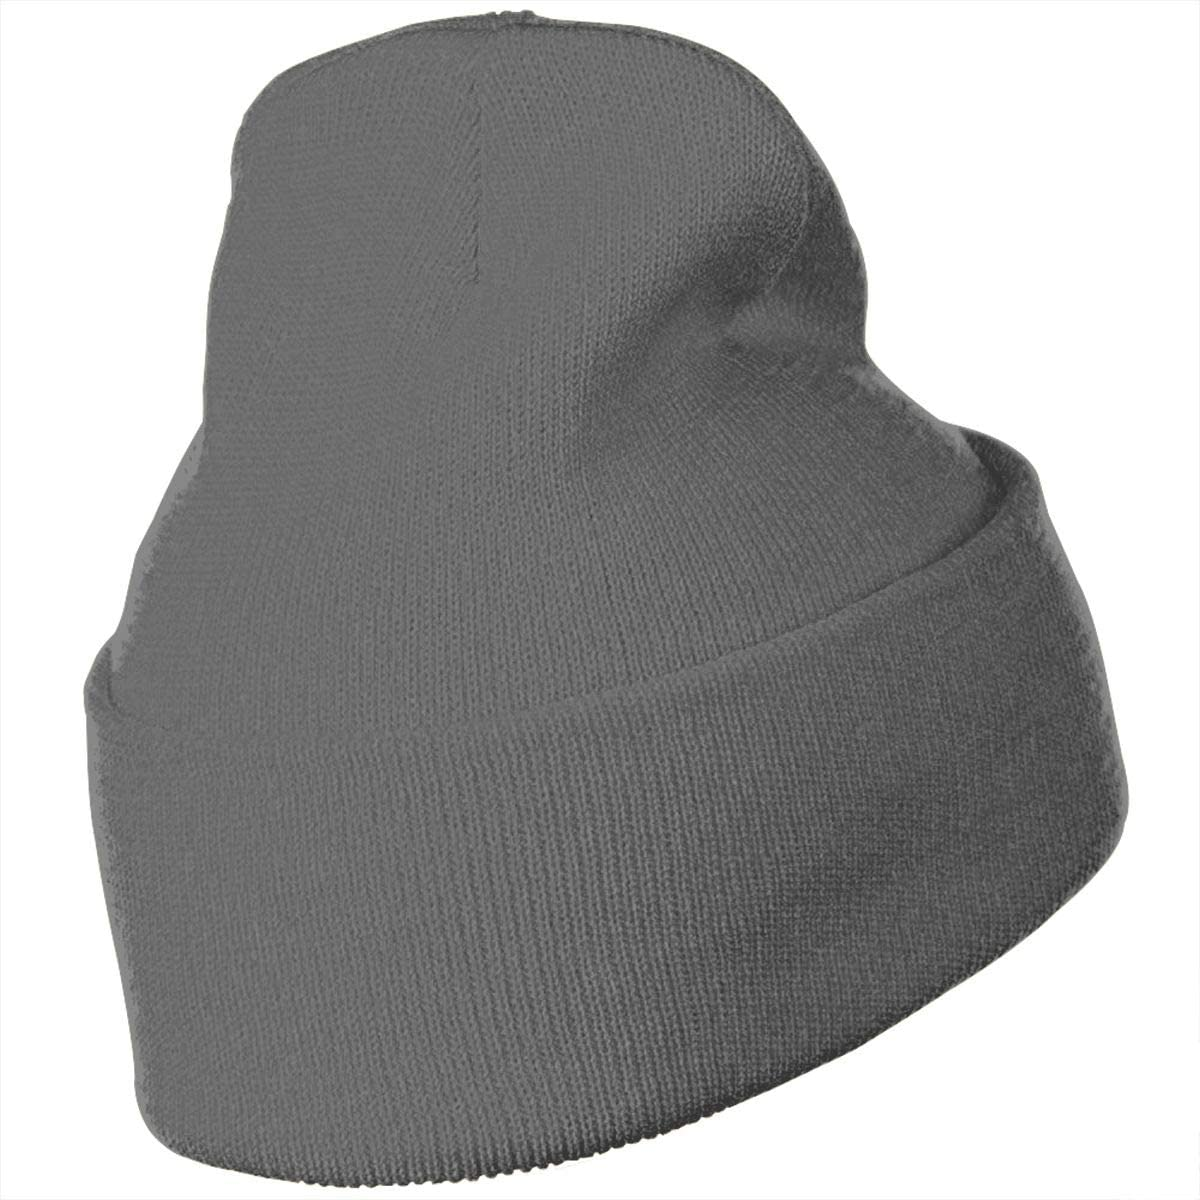 TAOMAP89 Dog Puppy Skull Caps Men /& Women Winter Warm Stretchy Knit Beanie Hats